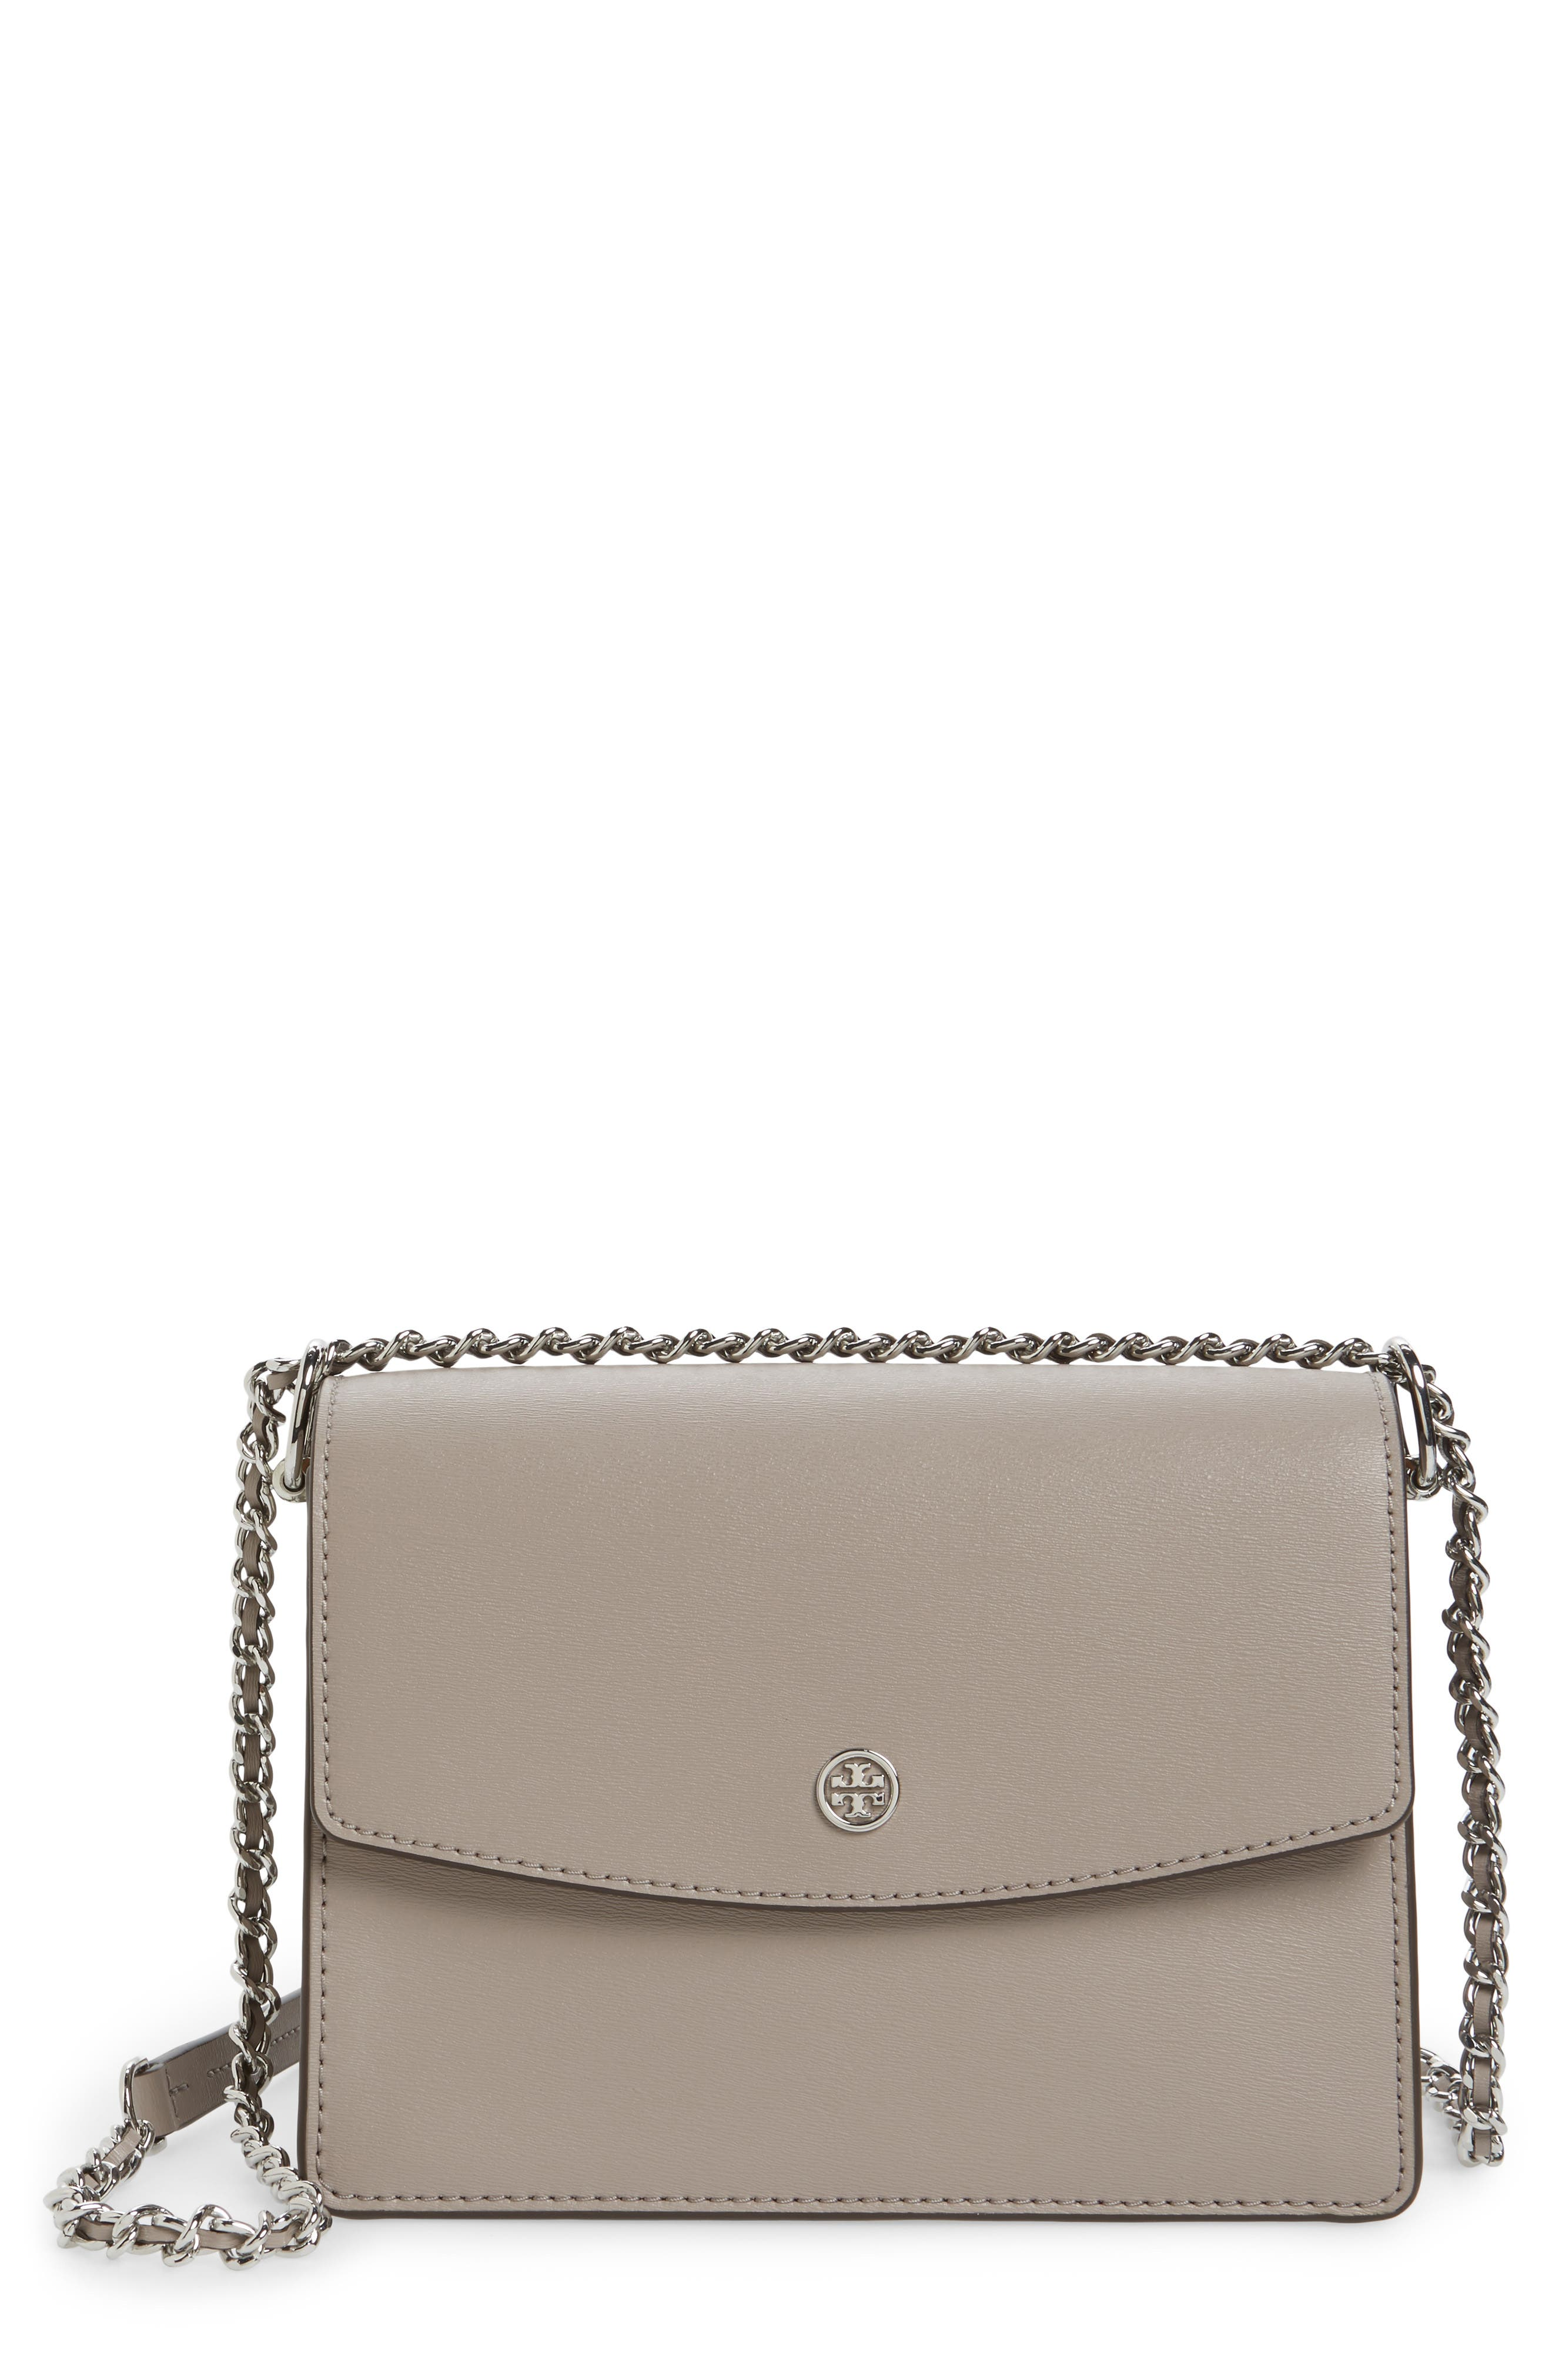 Main Image - Tory Burch Parker Leather Shoulder/Crossbody Bag